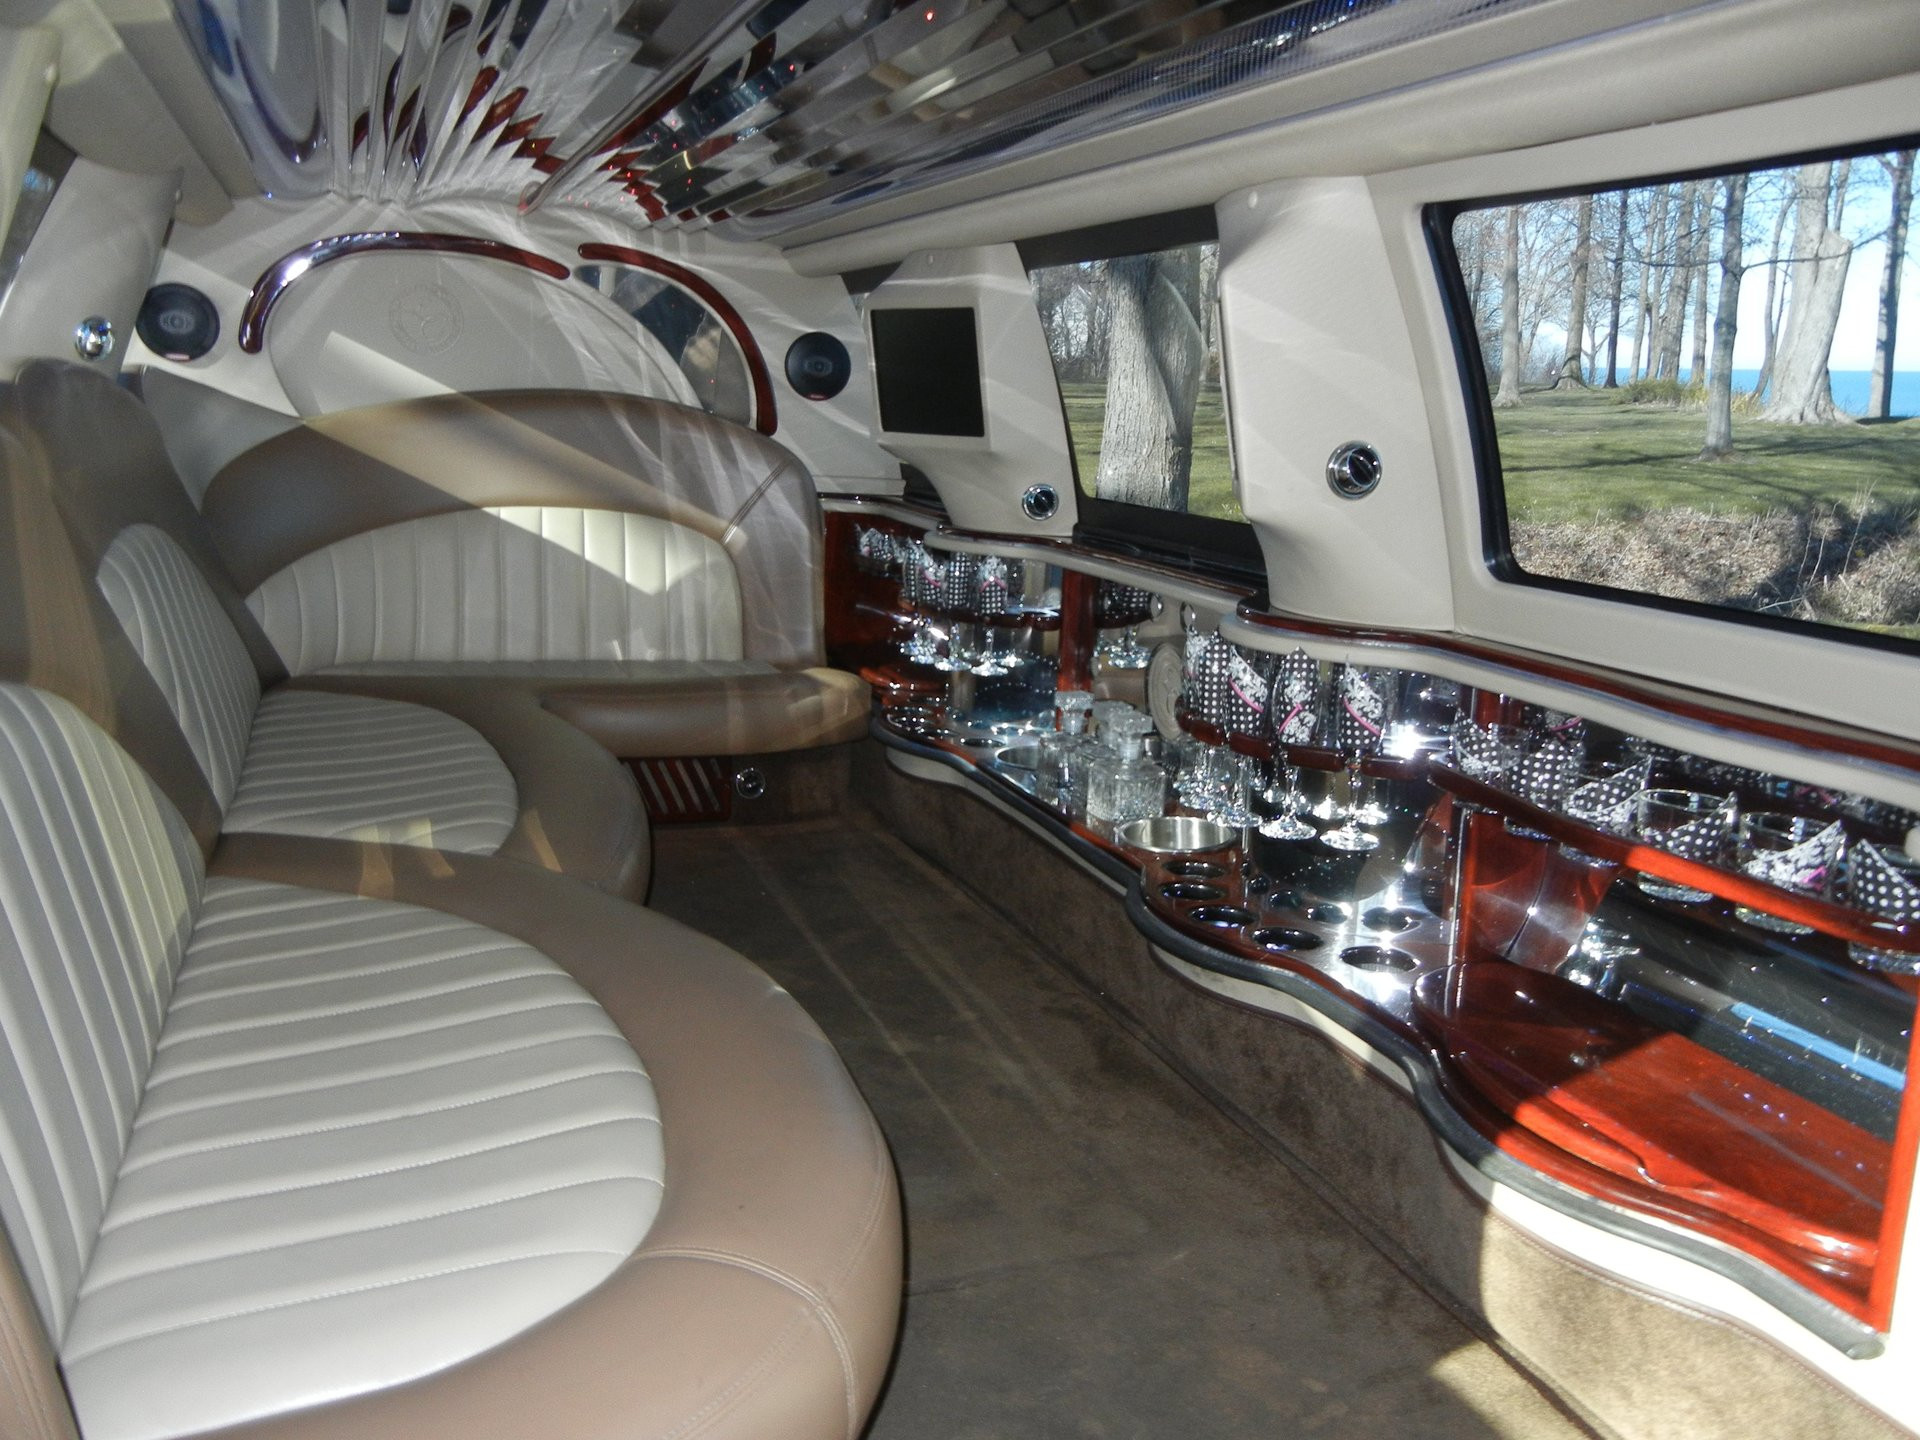 winery tour transportation erie pa south shore limousine